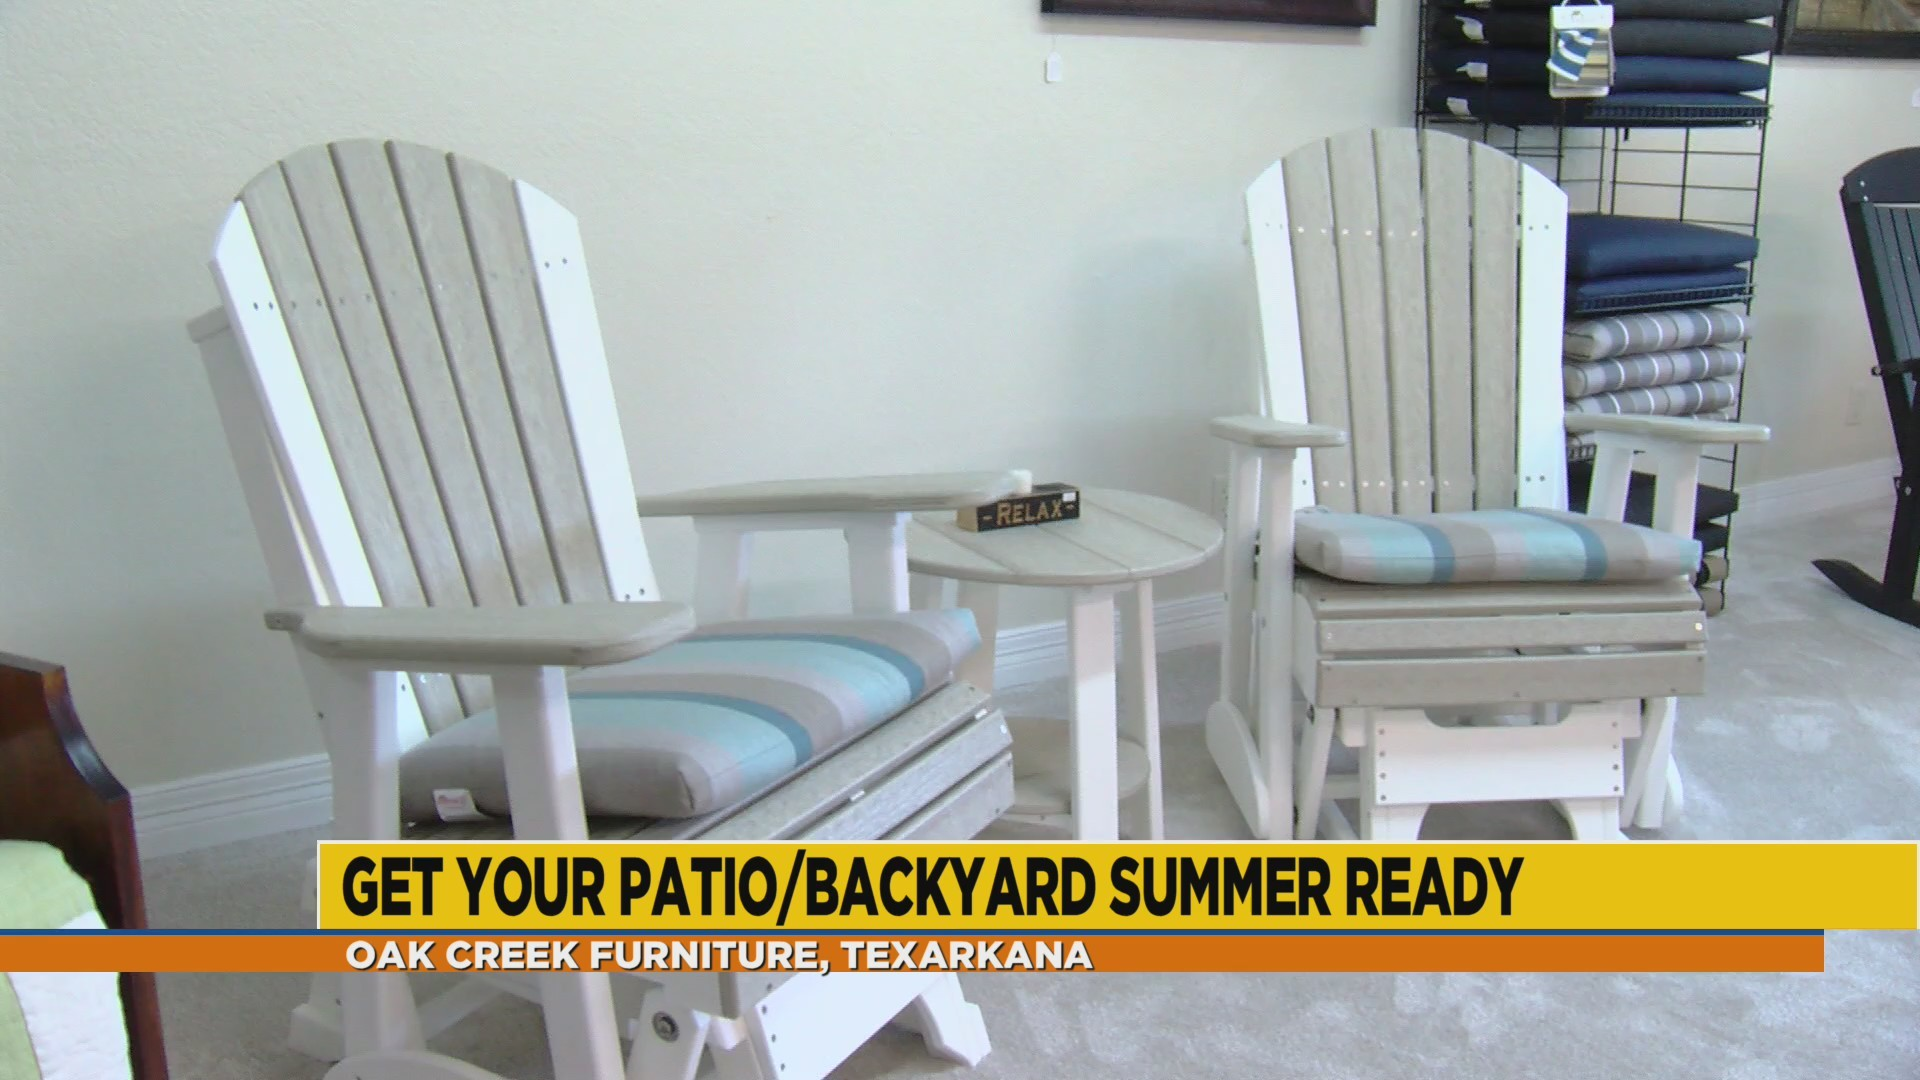 Revamp your patio for summer with Oak Creek Furniture